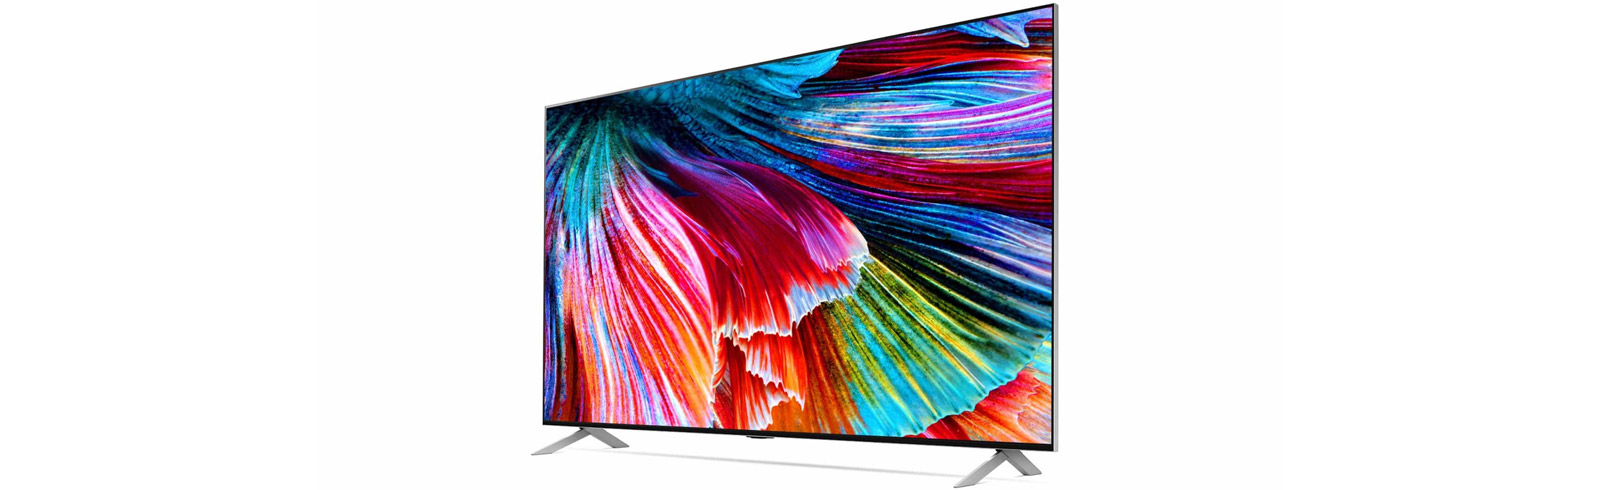 2021 8K LG QNED MiniLED 99 Series and 4K QNED MiniLED 90 Series specifications and features